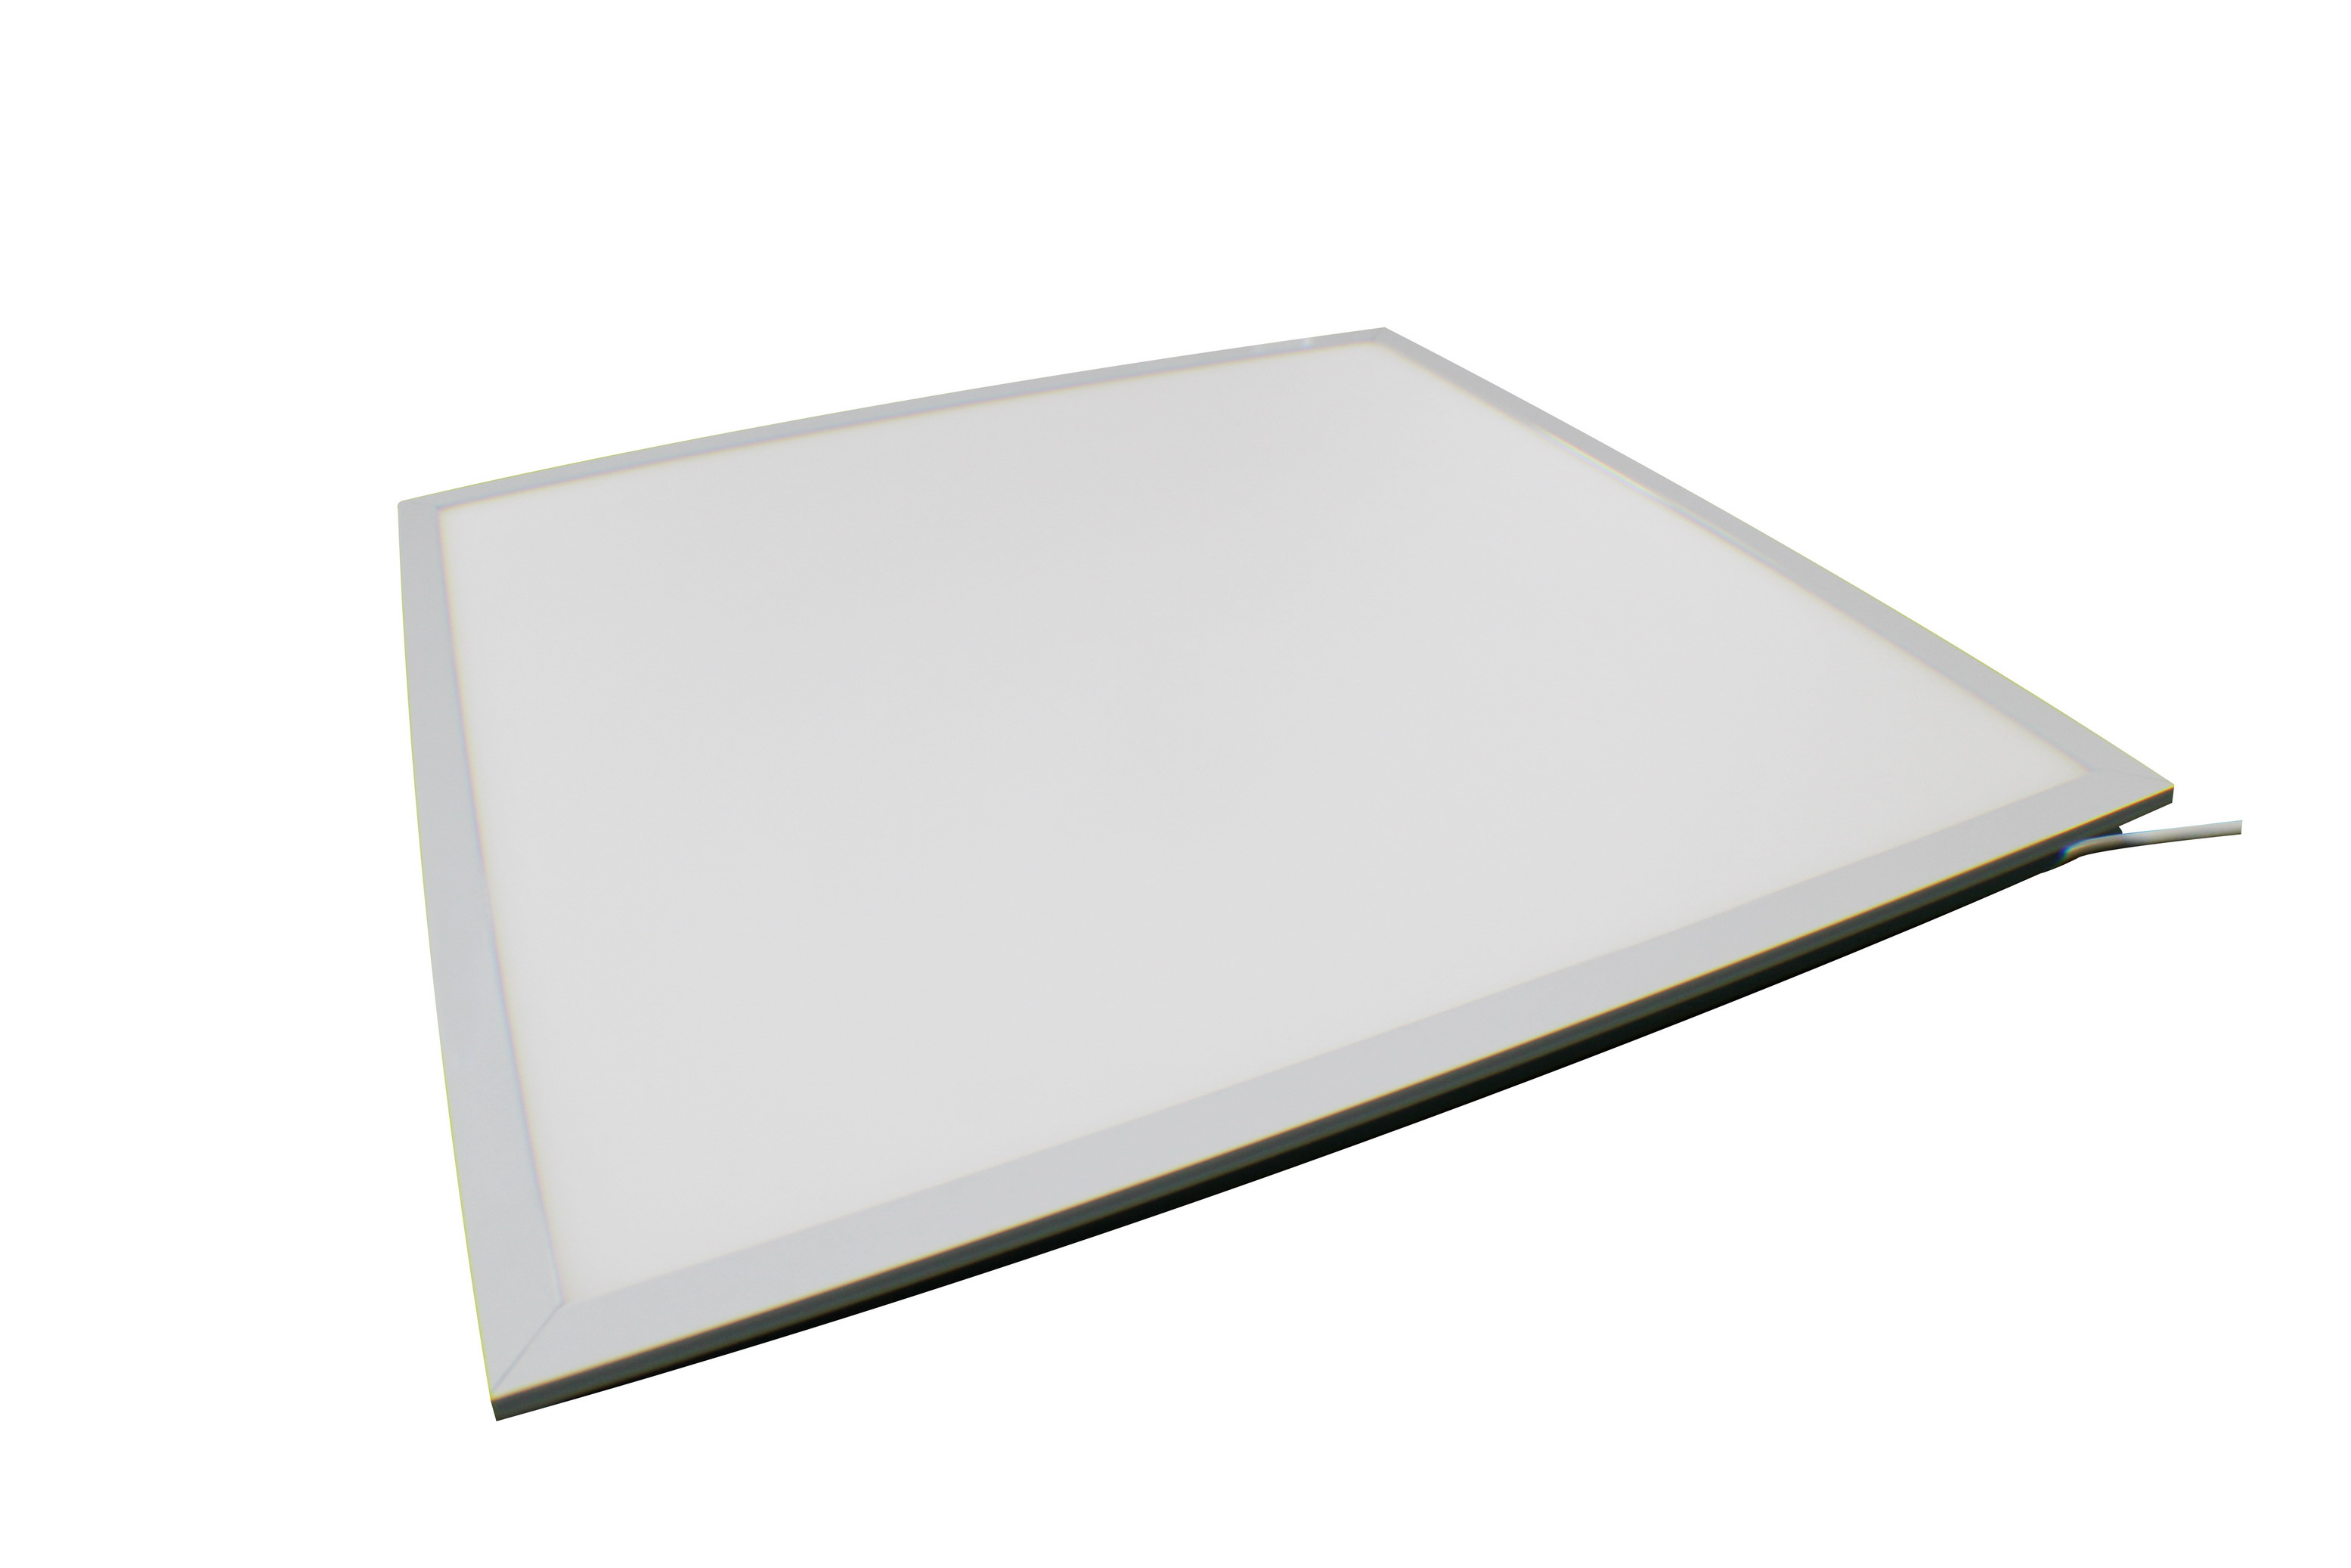 60 x 60 cm office led panel light 36w commercial lighting products 60 x 60 cm office led panel light 36w commercial lighting products aloadofball Gallery